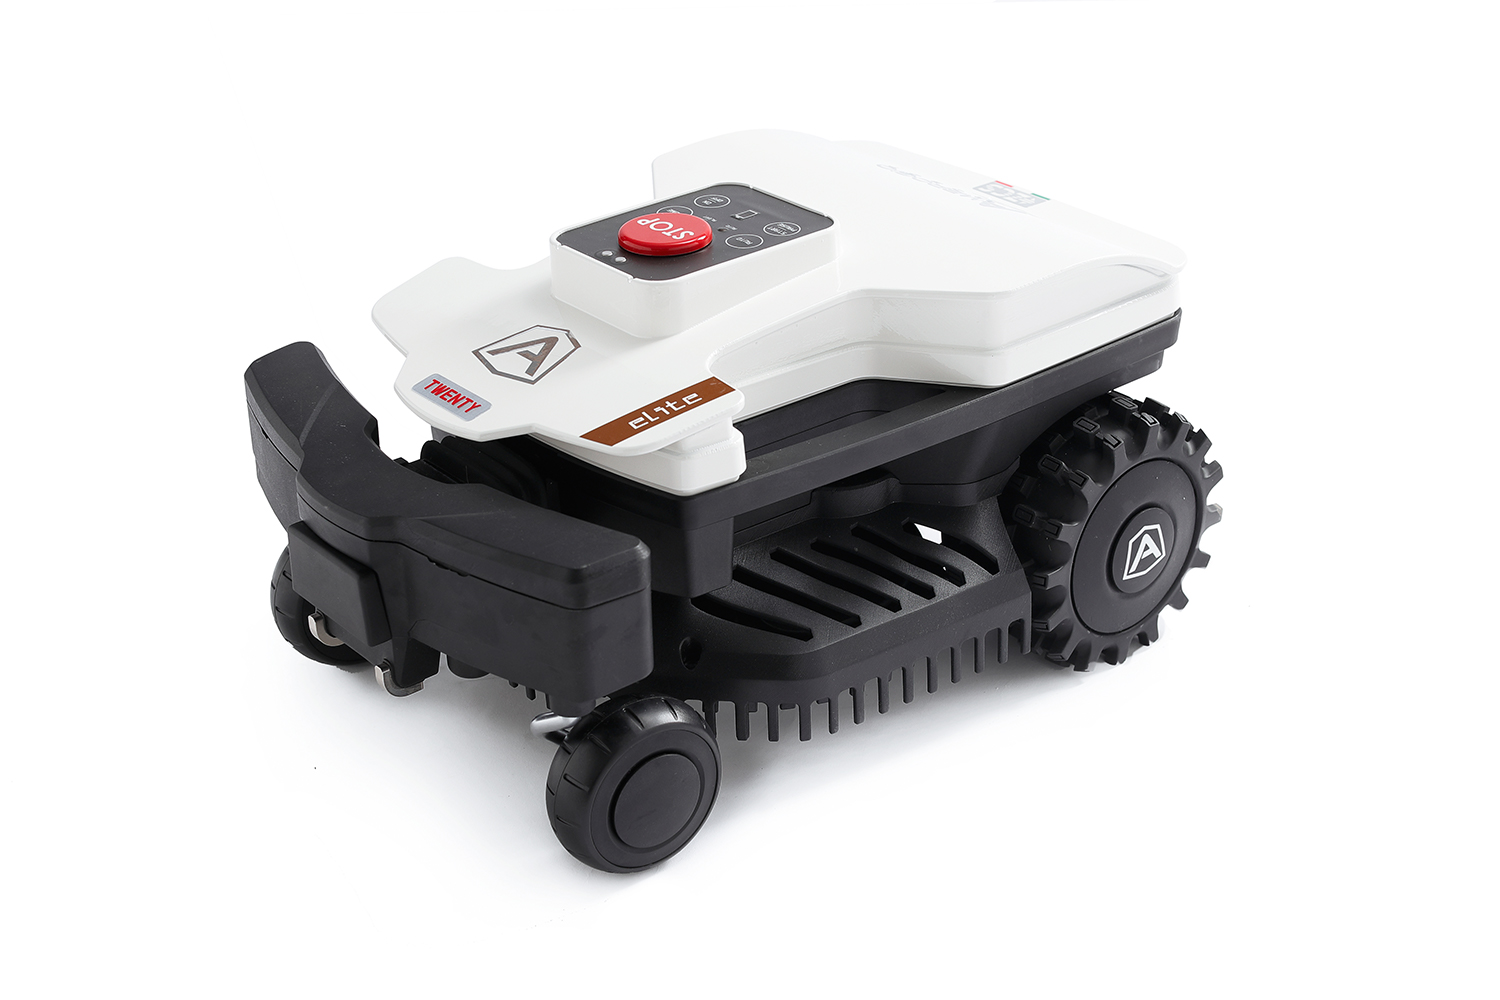 Ambrogio Twenty Elite Robotic Lawnmower RRP £1249